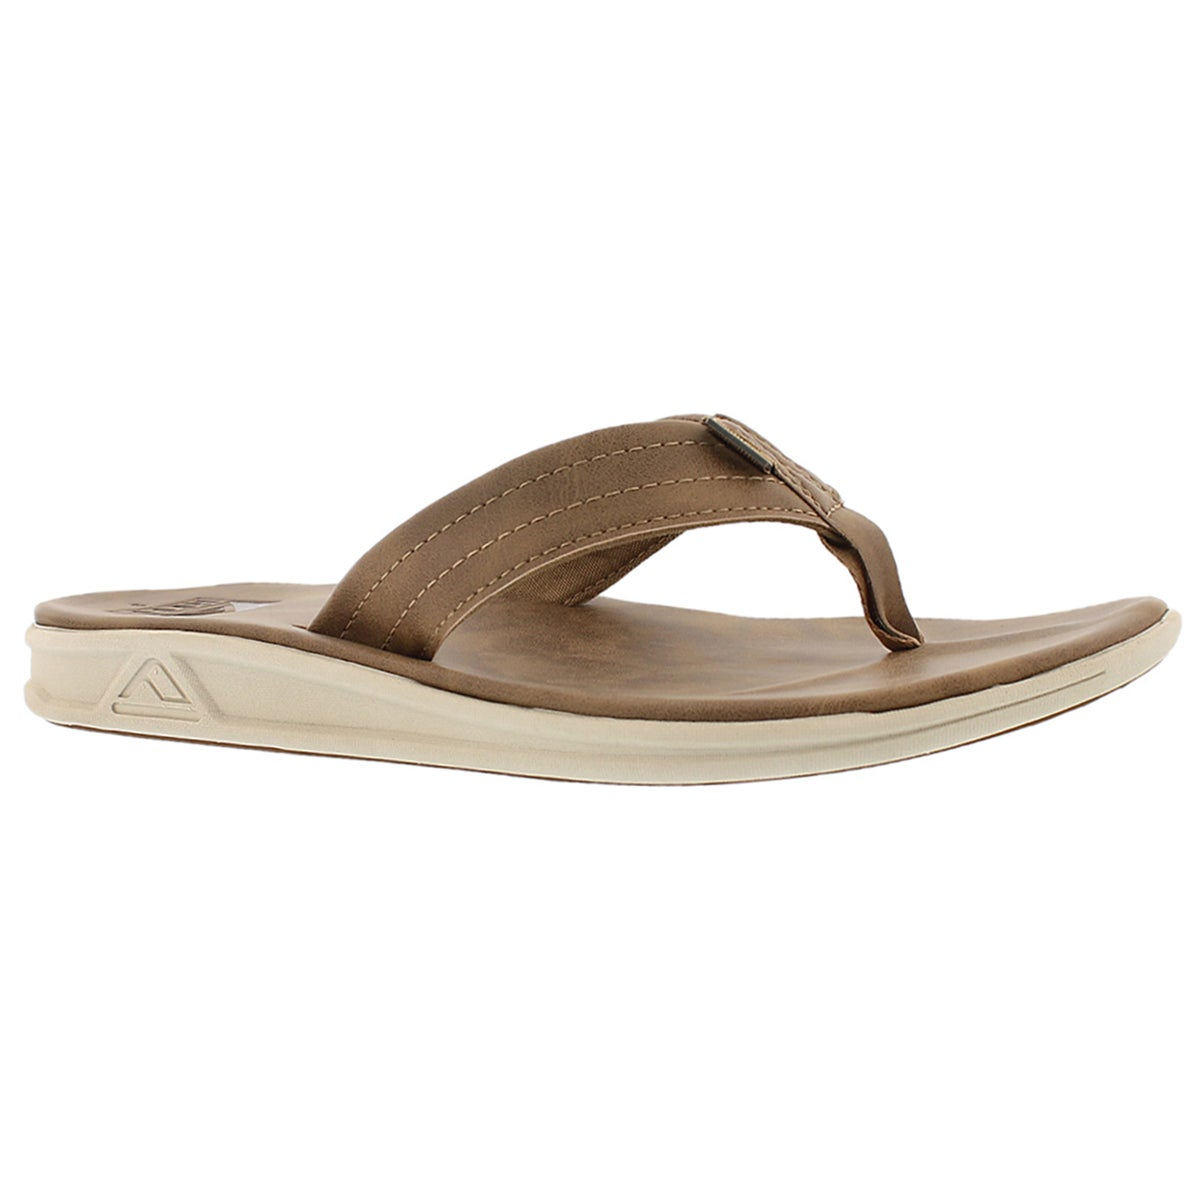 Men's REEF ROVER SL bronze/brown thong sandals